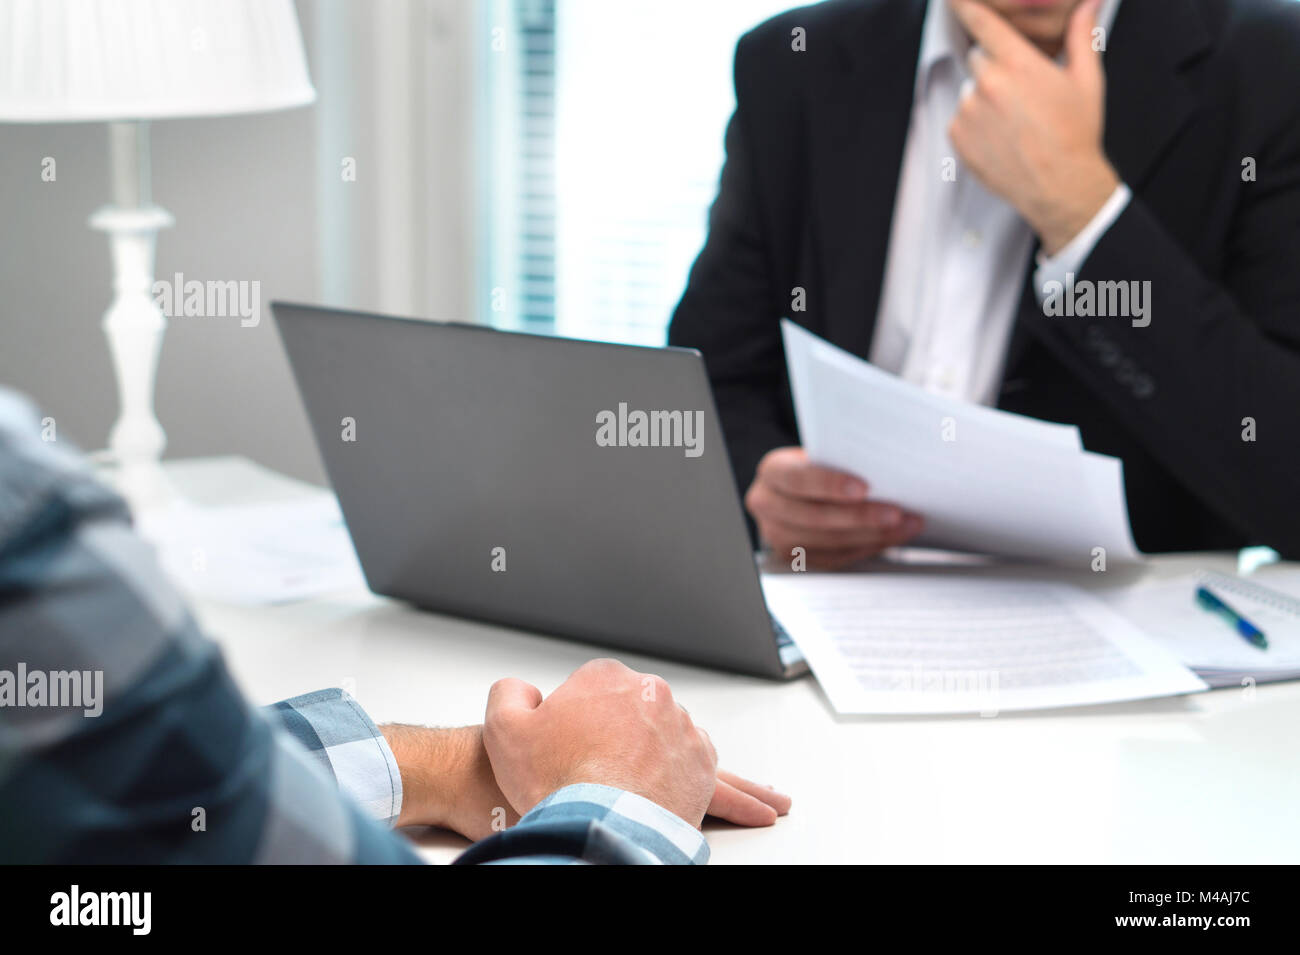 Job interview or meeting with bank worker in office. Business man considering. Discussion about loan, mortgage or - Stock Image